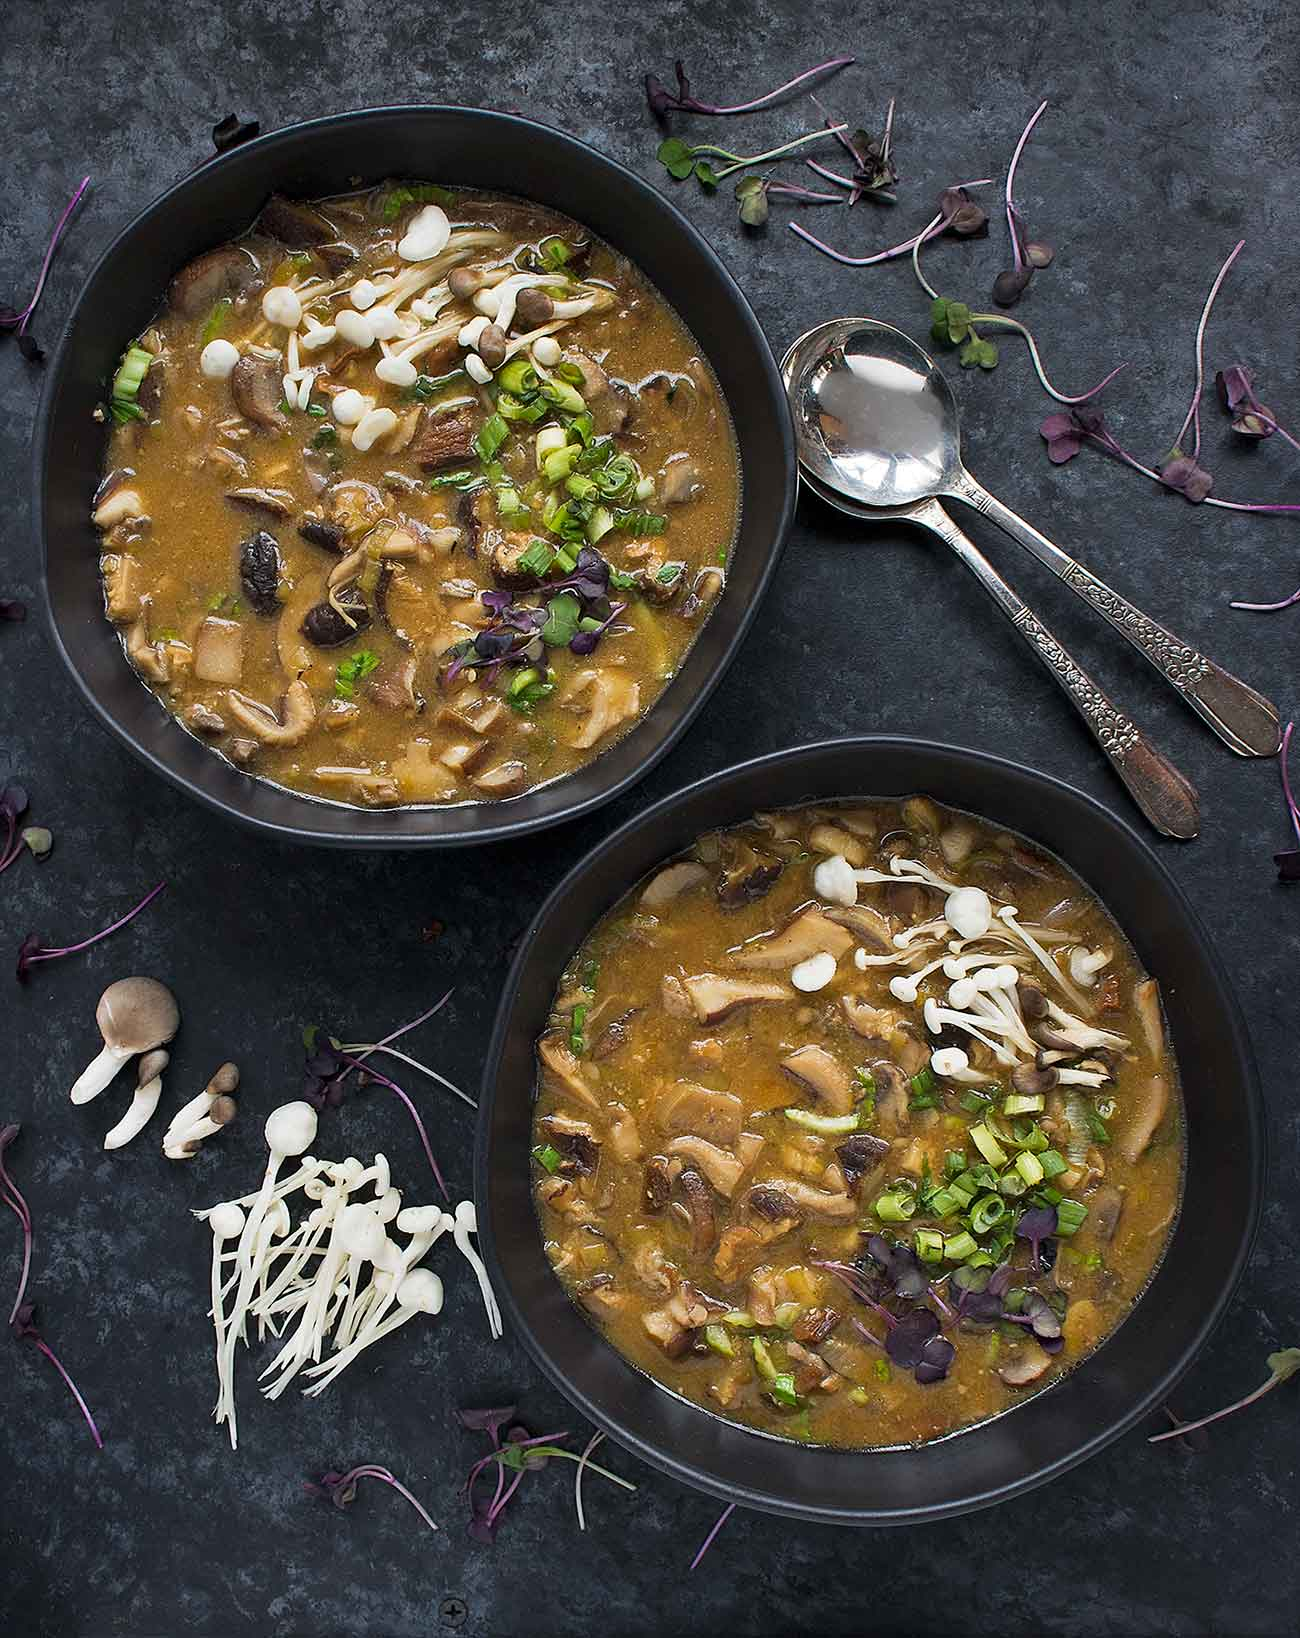 Two bowls of wild mushroom miso soup.